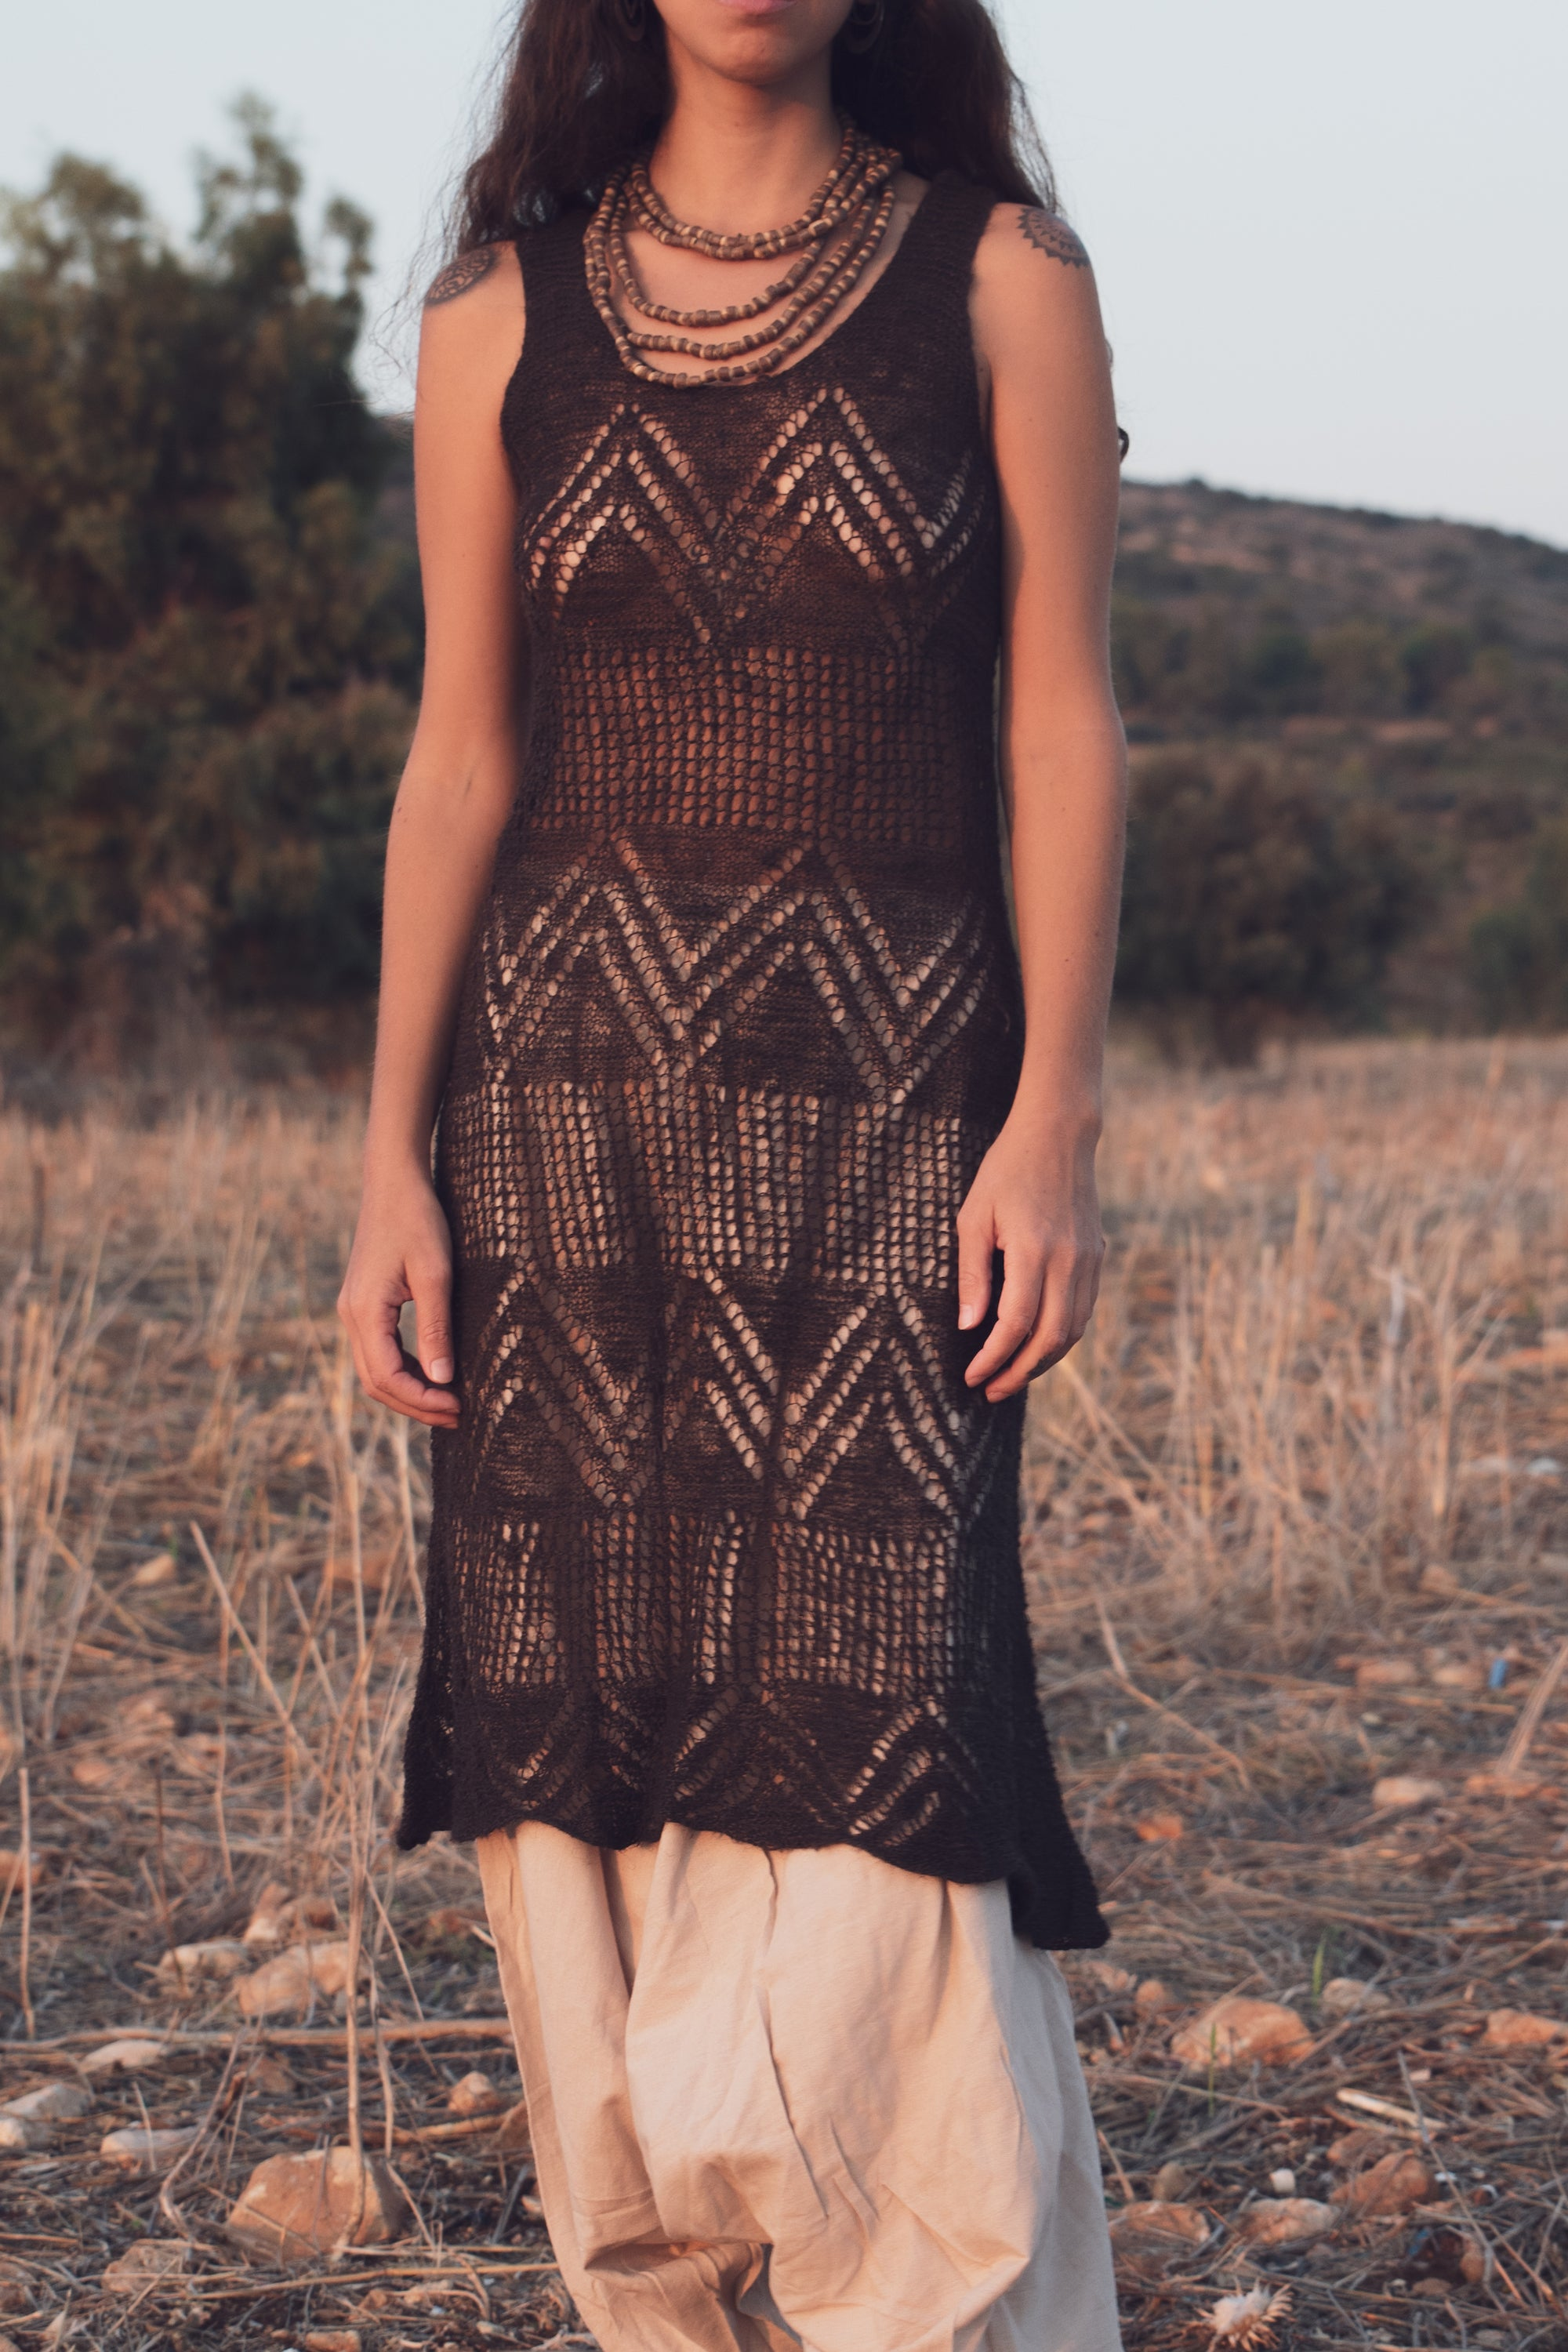 Brown Nettle Yarn Dress • Hand-knitted nettle yarn • Plant Dyed with Walnut Bark • Harro and Cutch